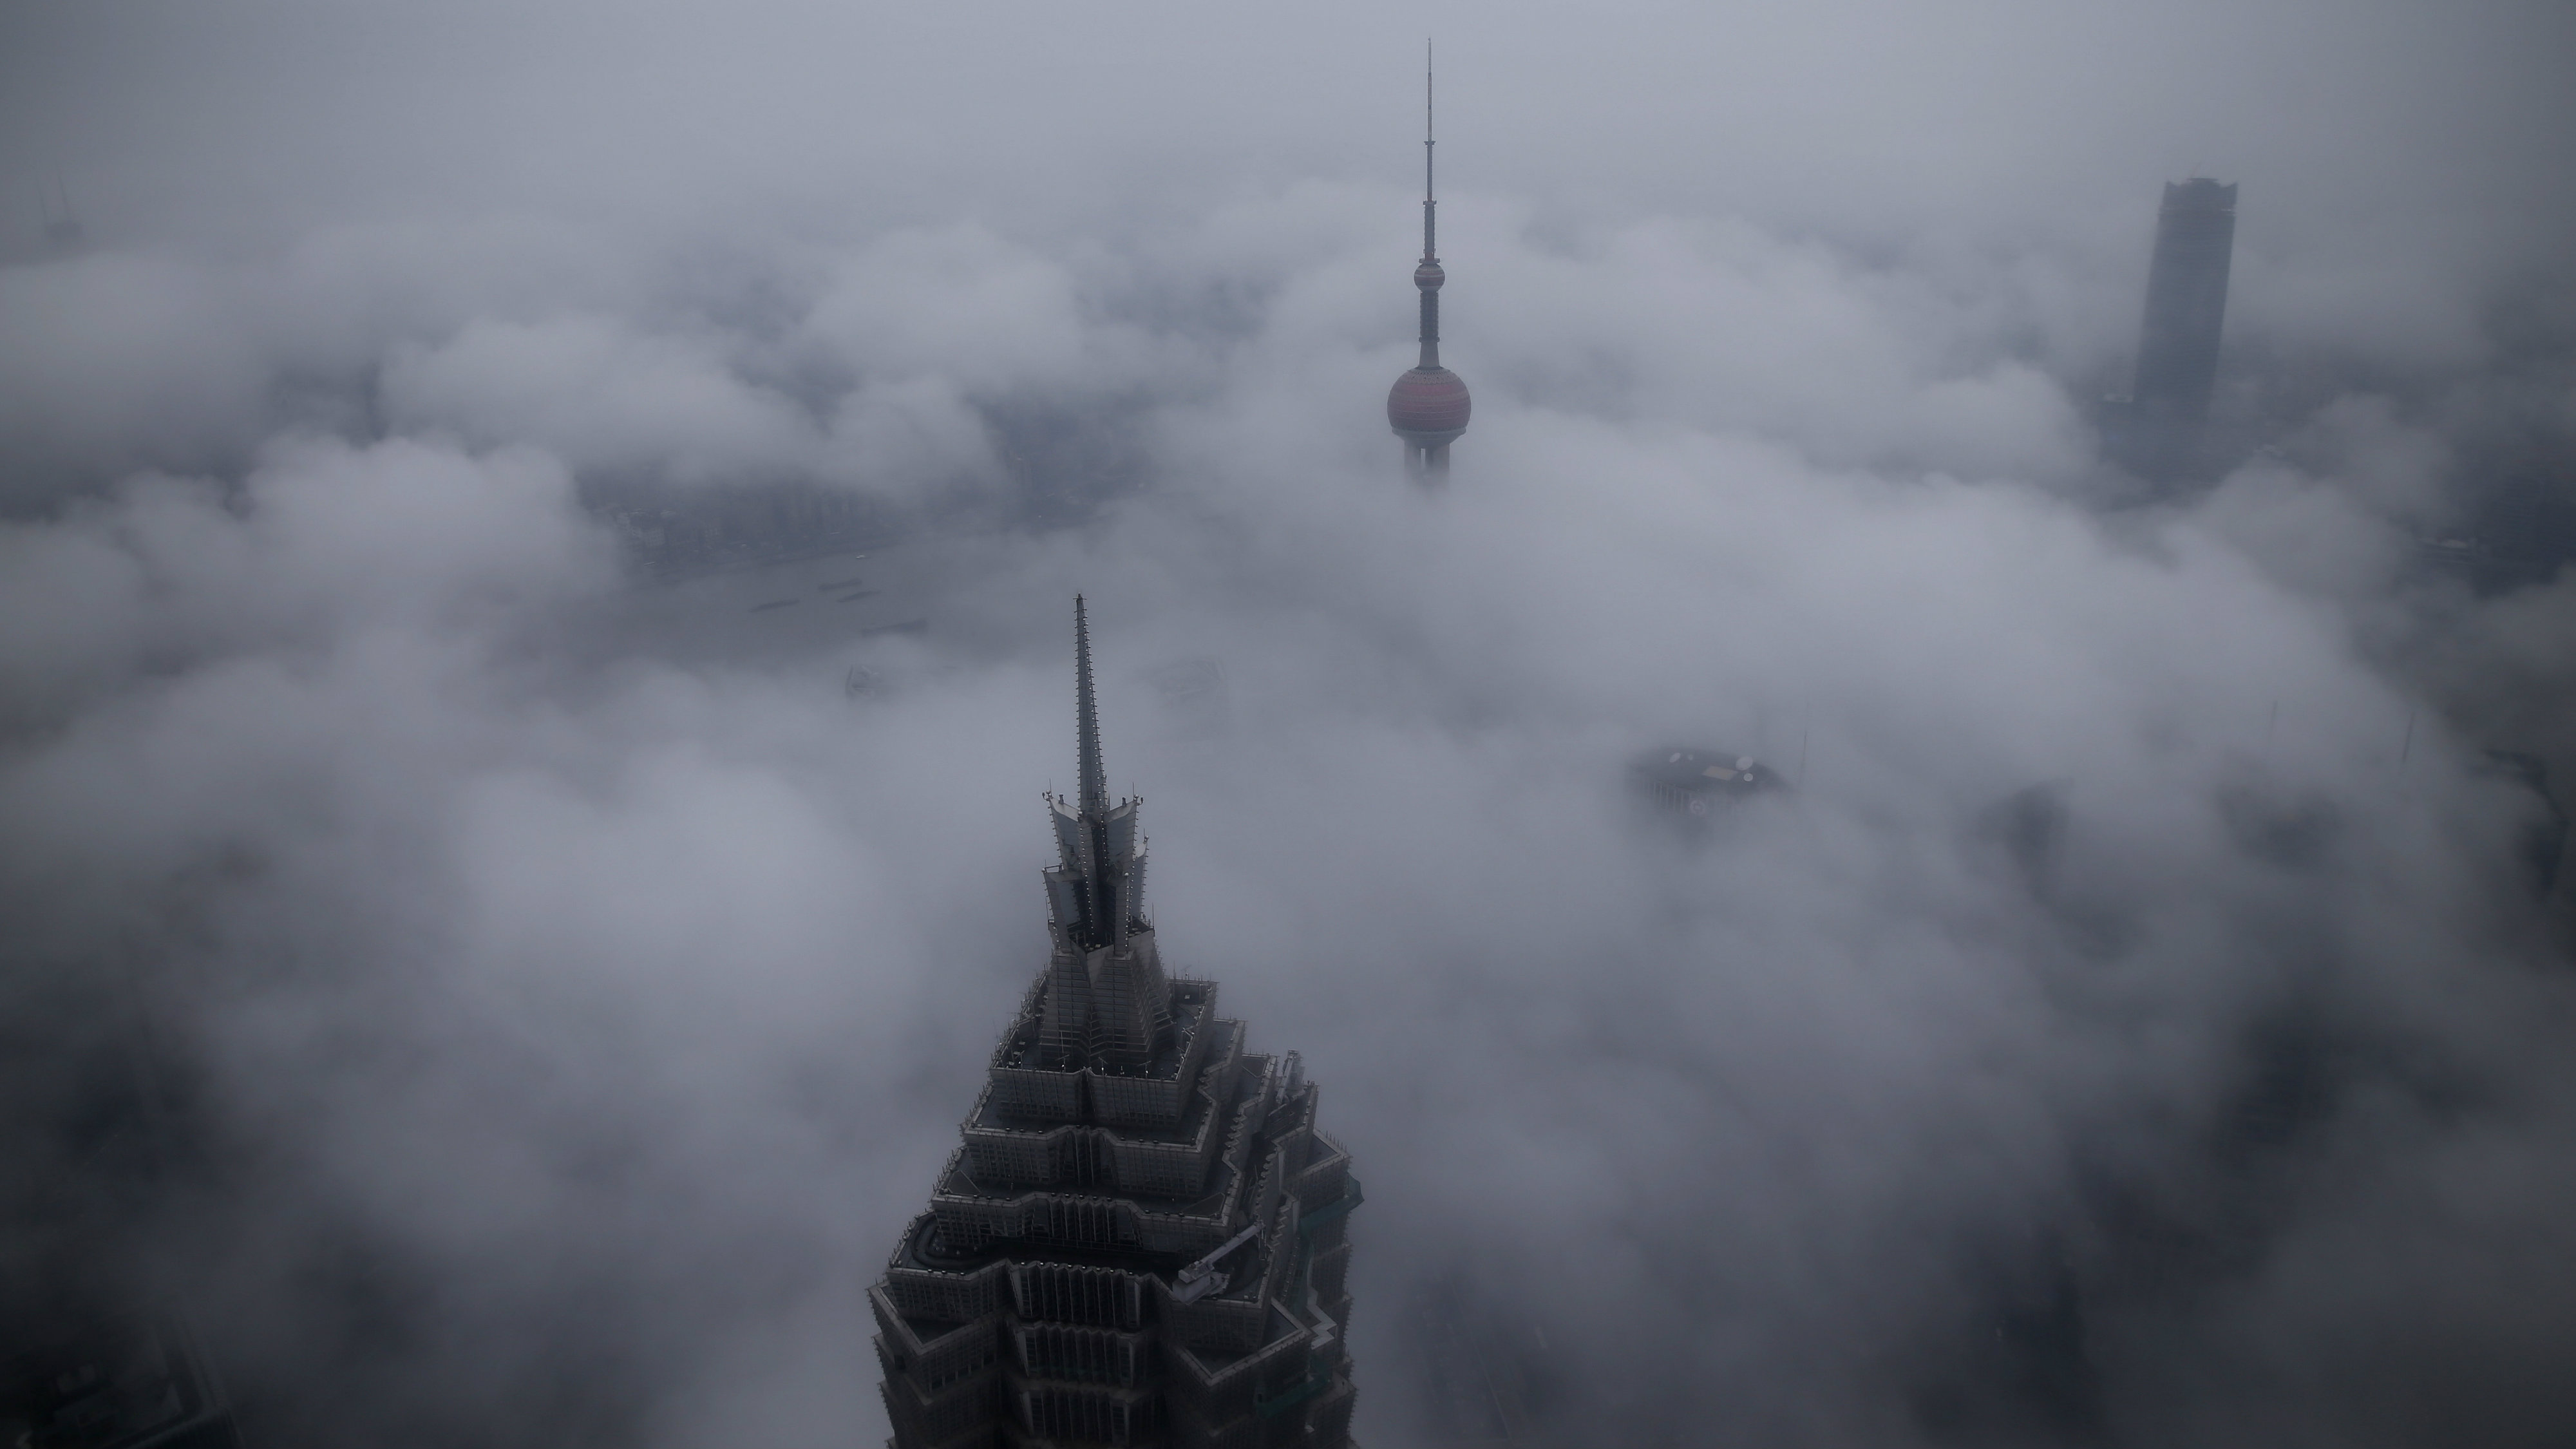 Haze air pollution in Shanghai is making China's cities even hotter than they already are, researchers say.